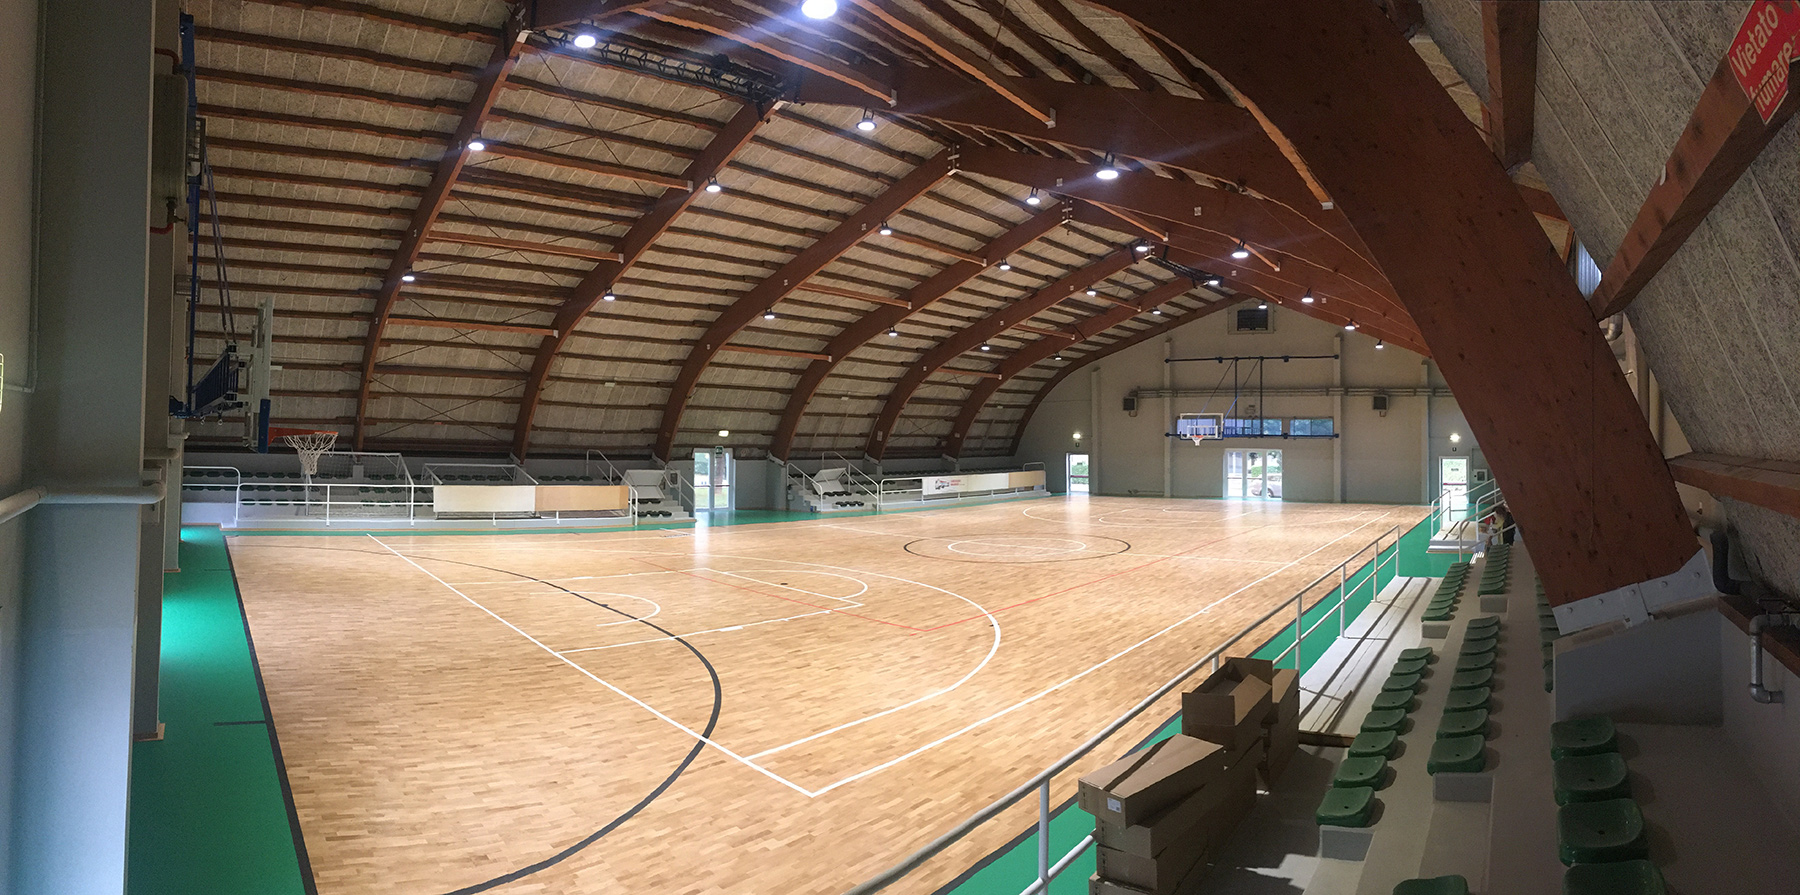 The splendid sports parquet finished and ready to use